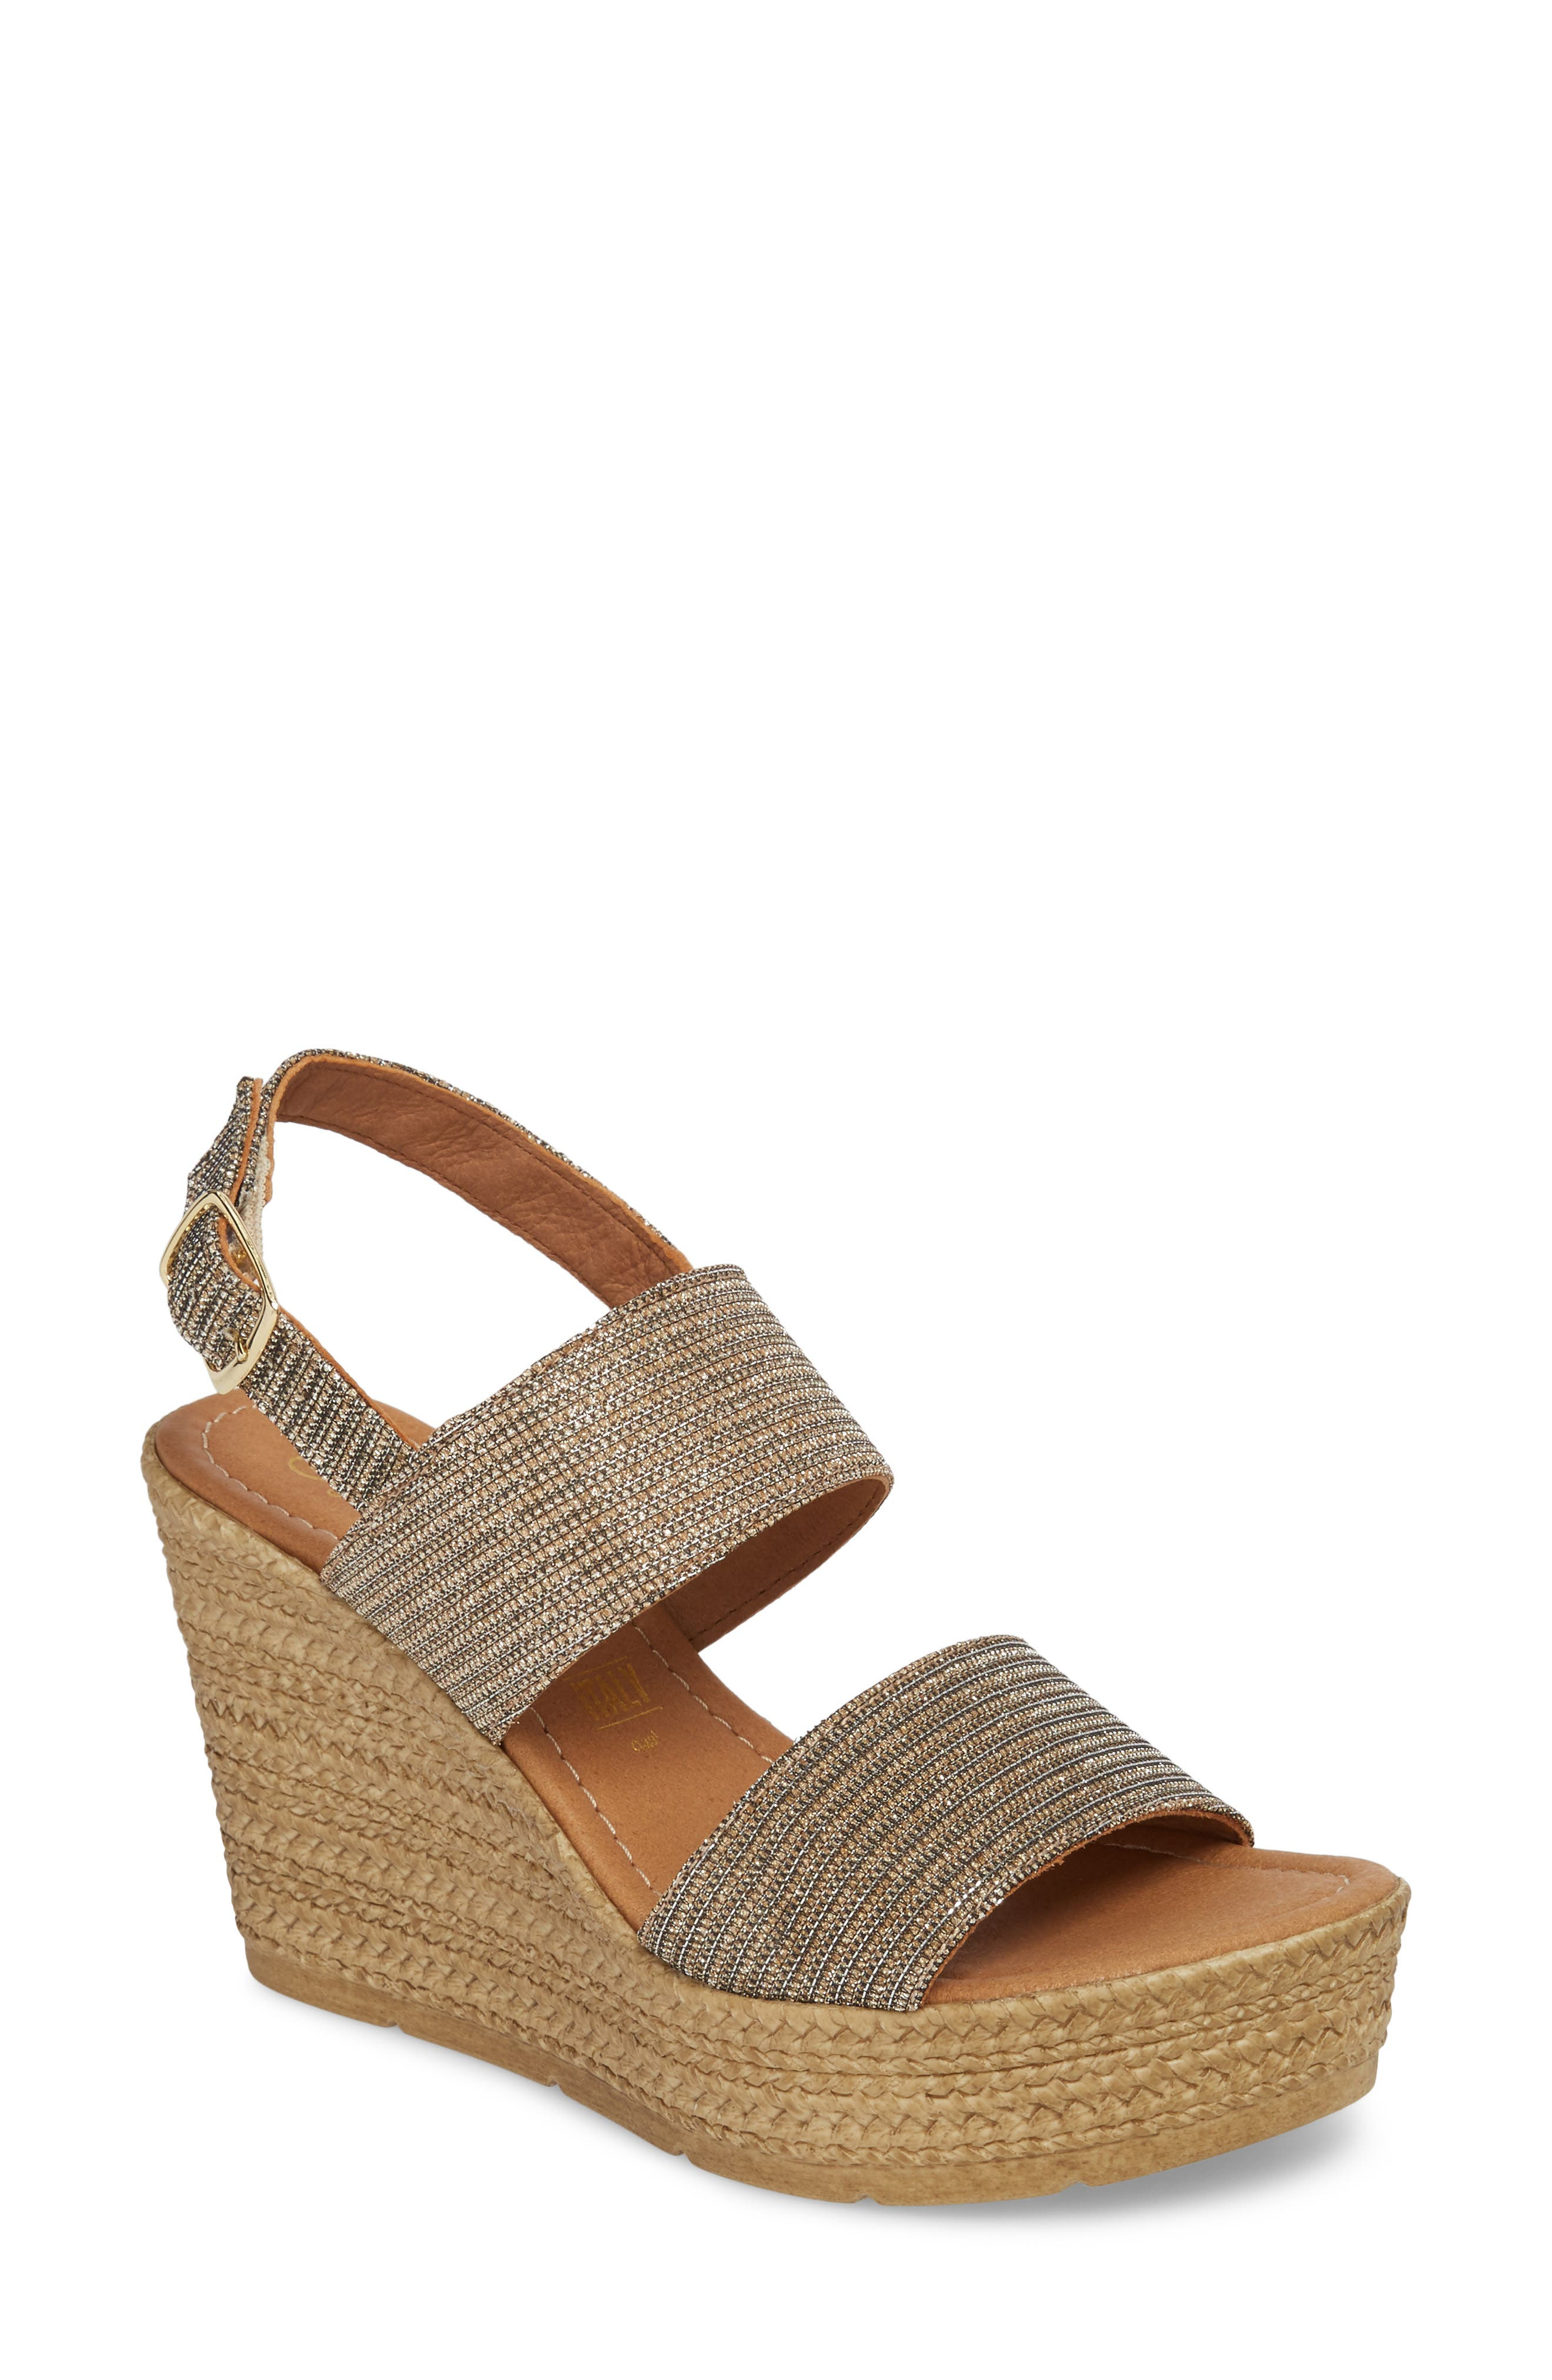 Downtime Wedge Sandal,                         Main,                         color, 220